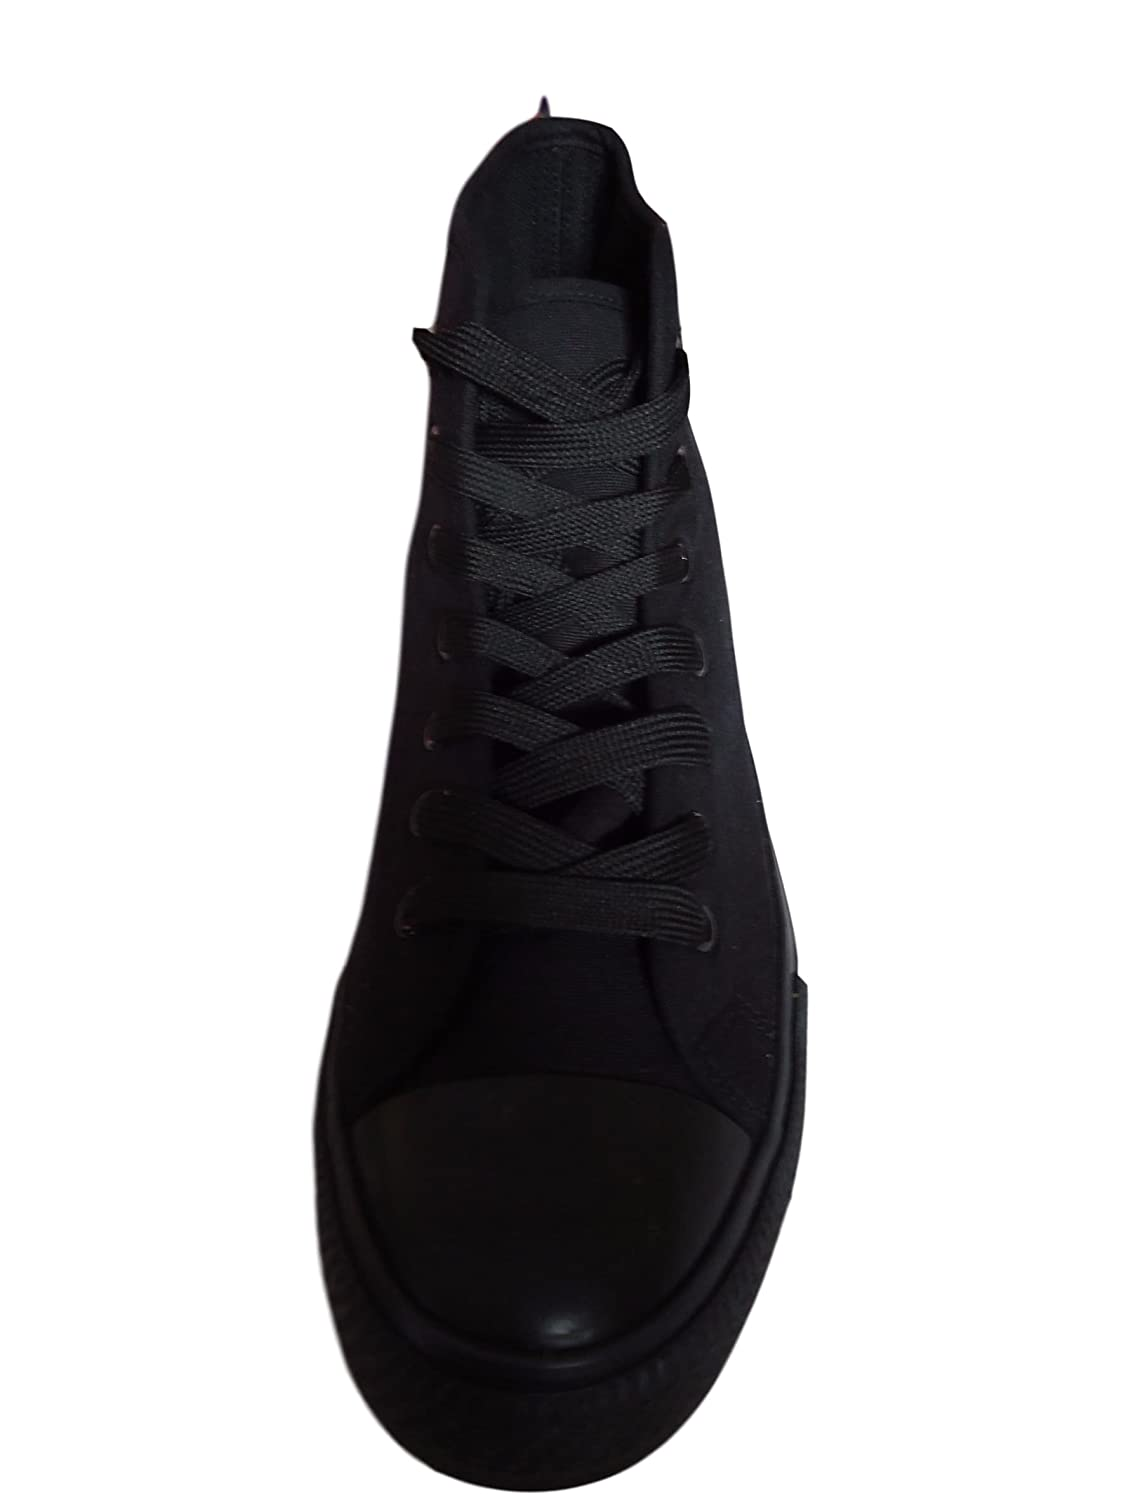 0dd06f52478f Black High Top Ankle Boots Canvas Baseball Trainers Womens Mens Plimsolls  Pumps  Amazon.co.uk  Shoes   Bags